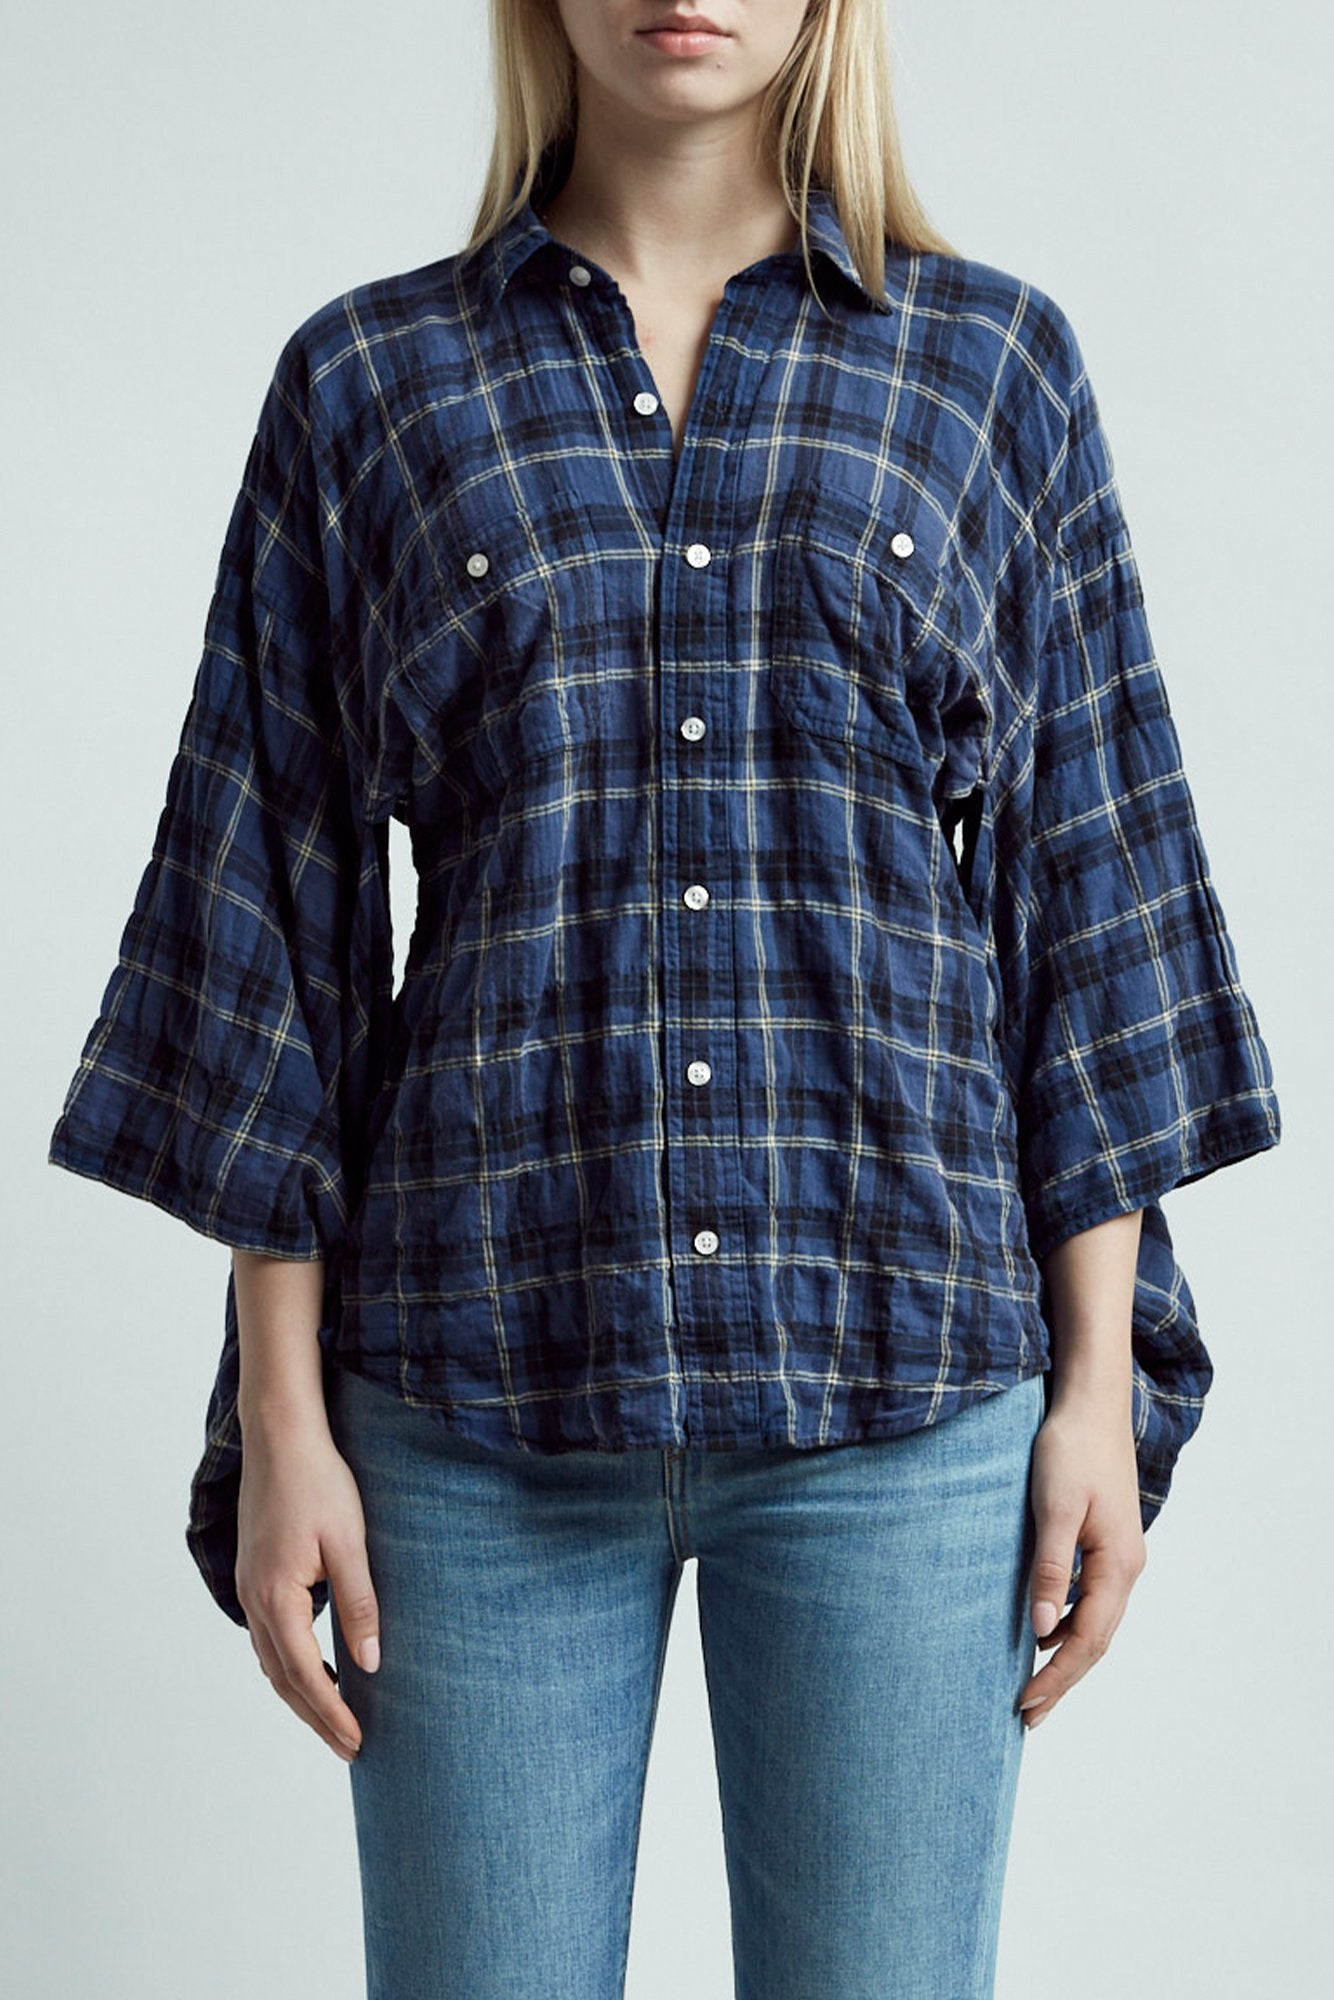 Kimono Shirt – Blue and Yellow Plaid